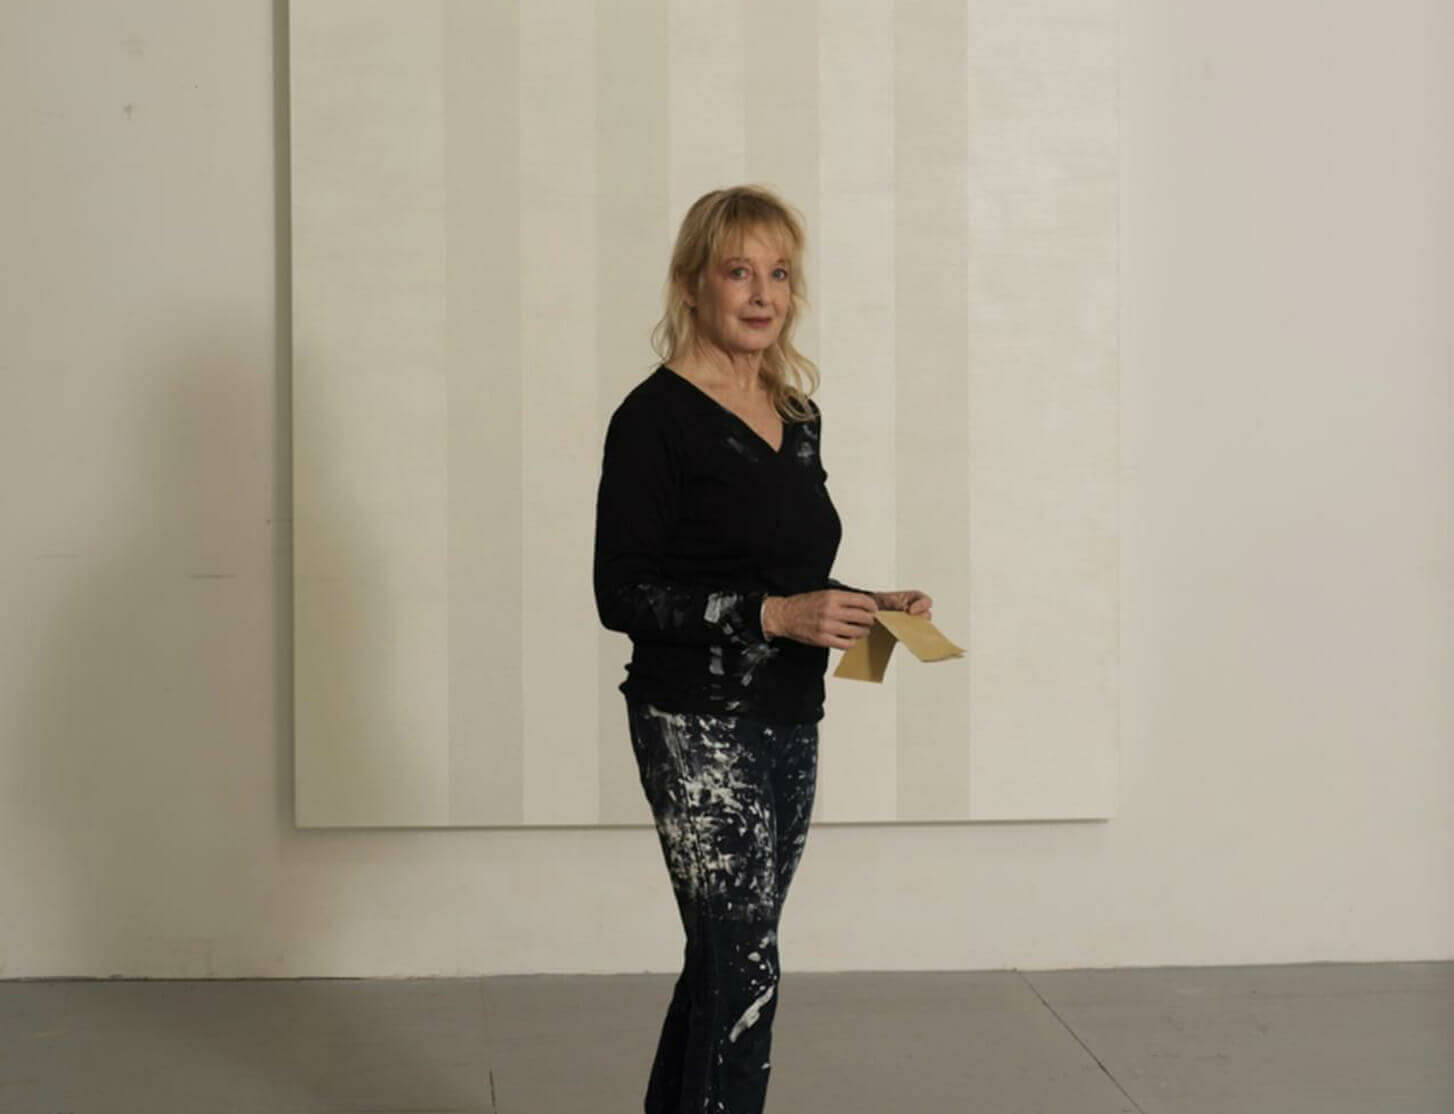 Mary Corse discusses the inspiration behind her works